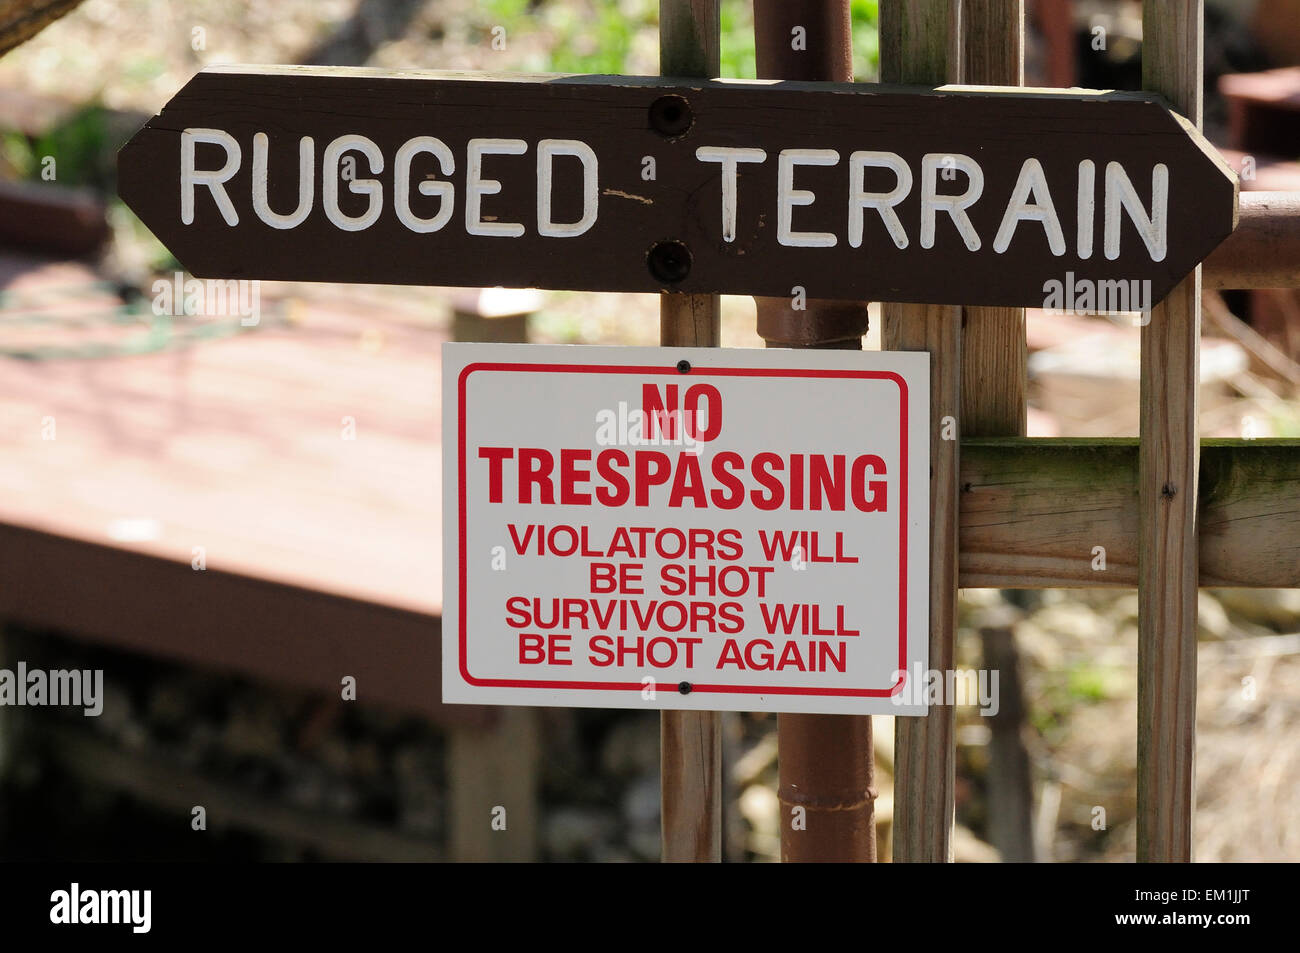 Rugged Terrain sign with warning. - Stock Image